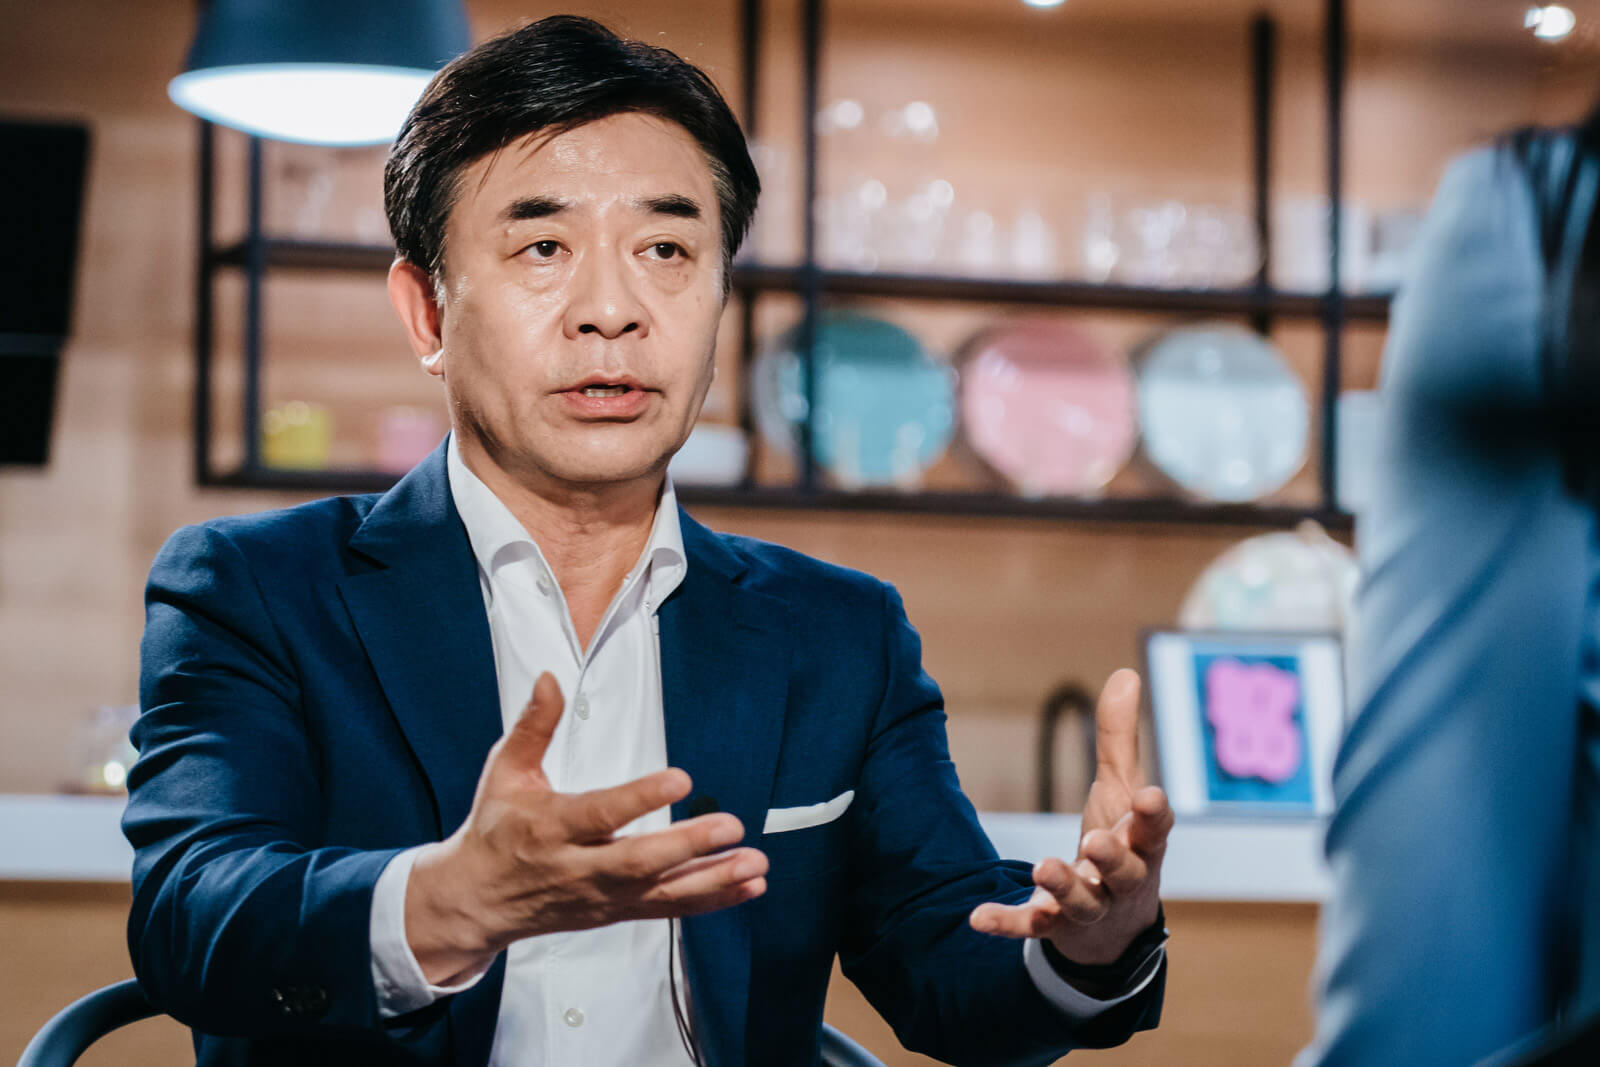 Hyun-Suk Kim is the President and CEO of the Consumer Electronics Division at Samsung Electronics.